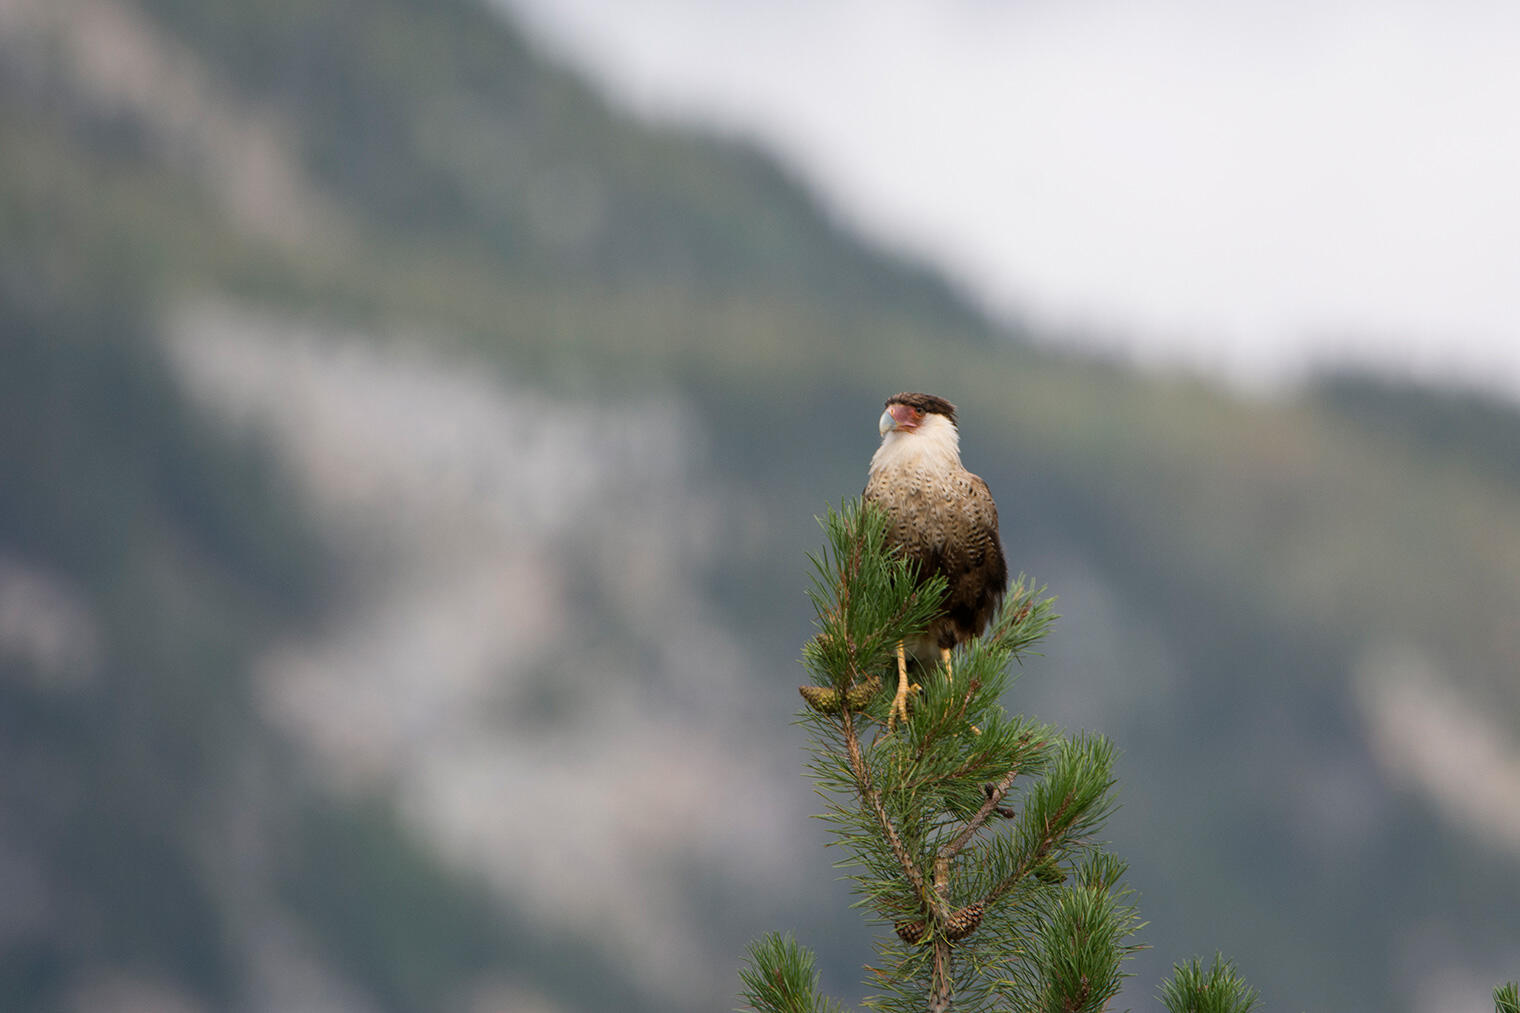 Crested Caracara spotted in a pine tree in Jasper National Park, Alberta. Dale Wilde